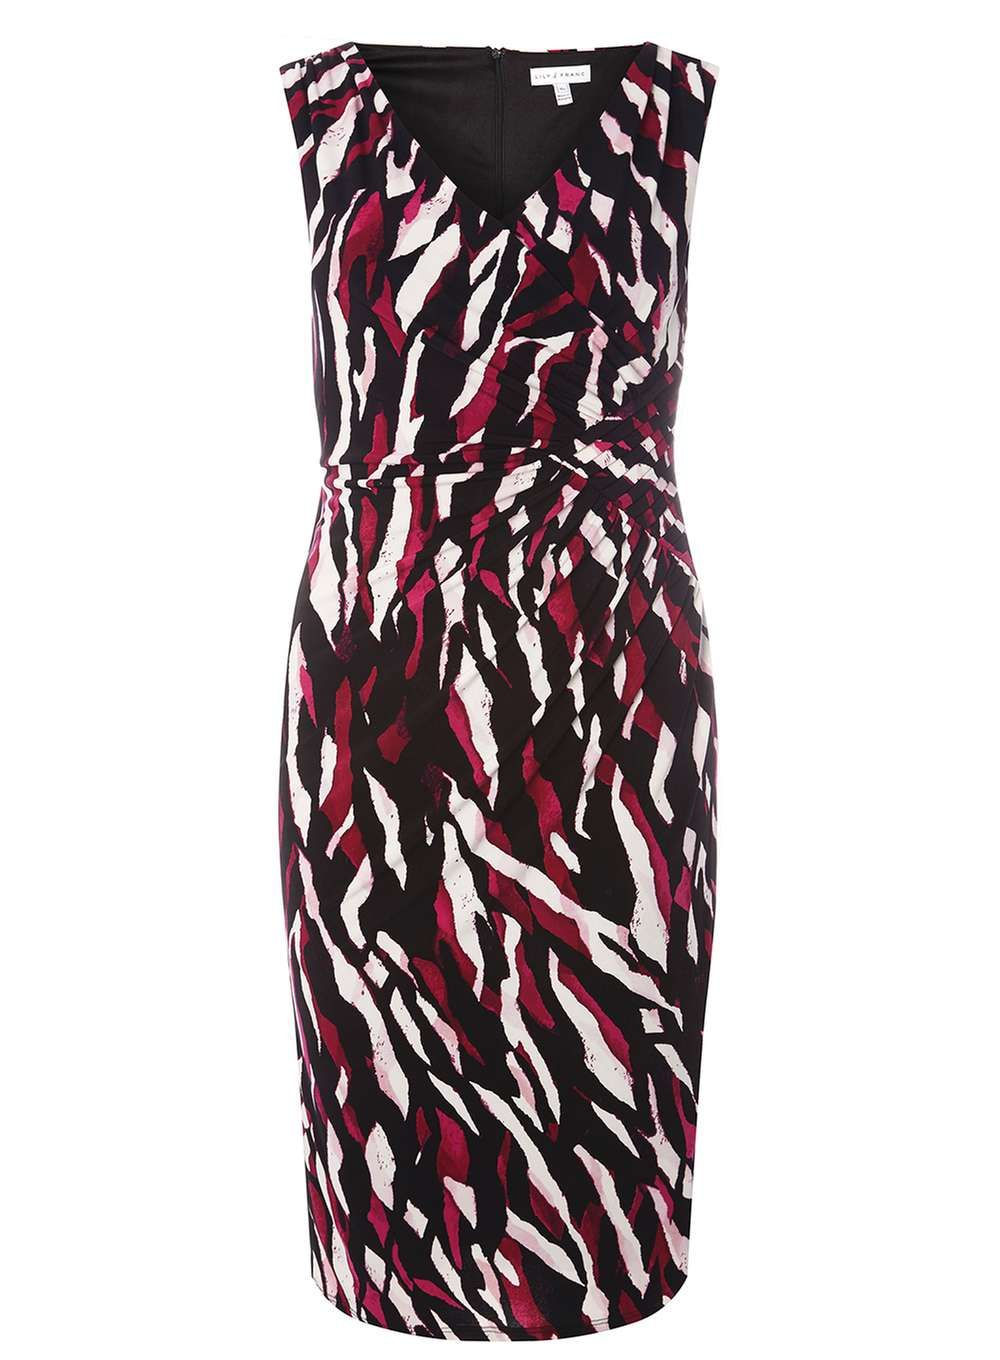 235785d64d   Lily   Franc Abstract Animal Print Dress - View All Dresses - Dresses - Dorothy  Perkins United States